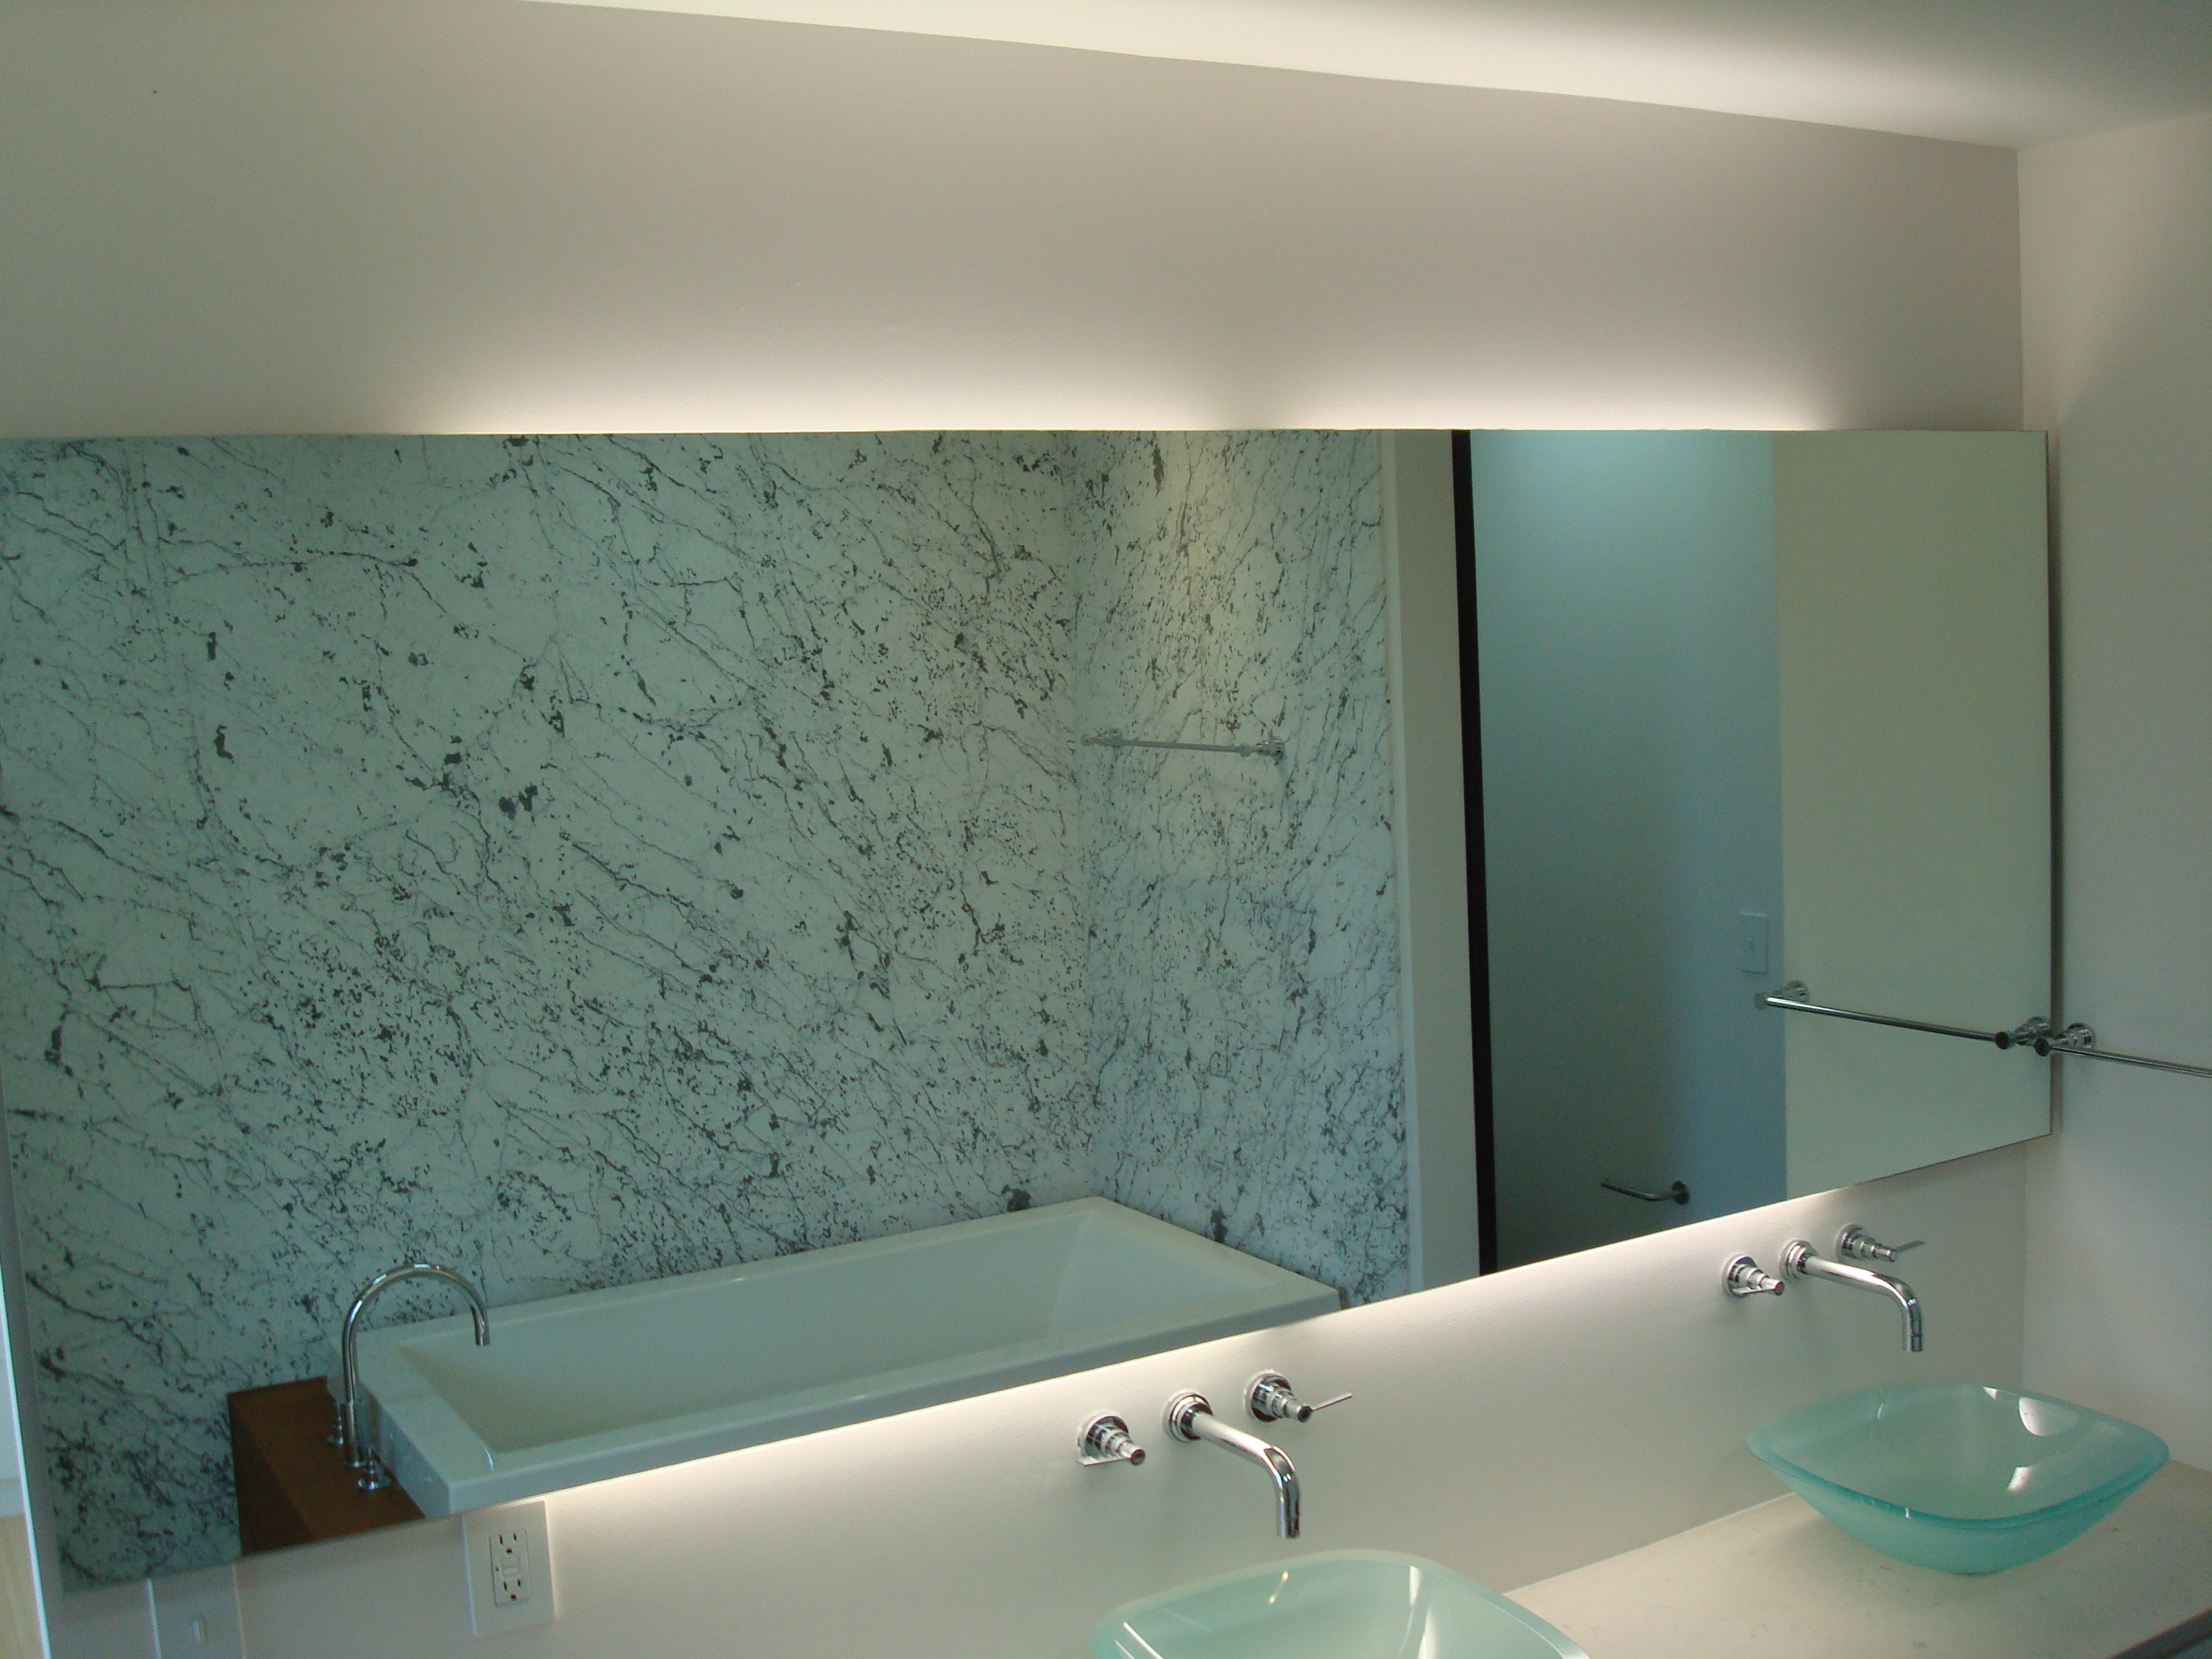 Featured Image of Beauty Contemporary Bathroom Mirror With LED Lighting